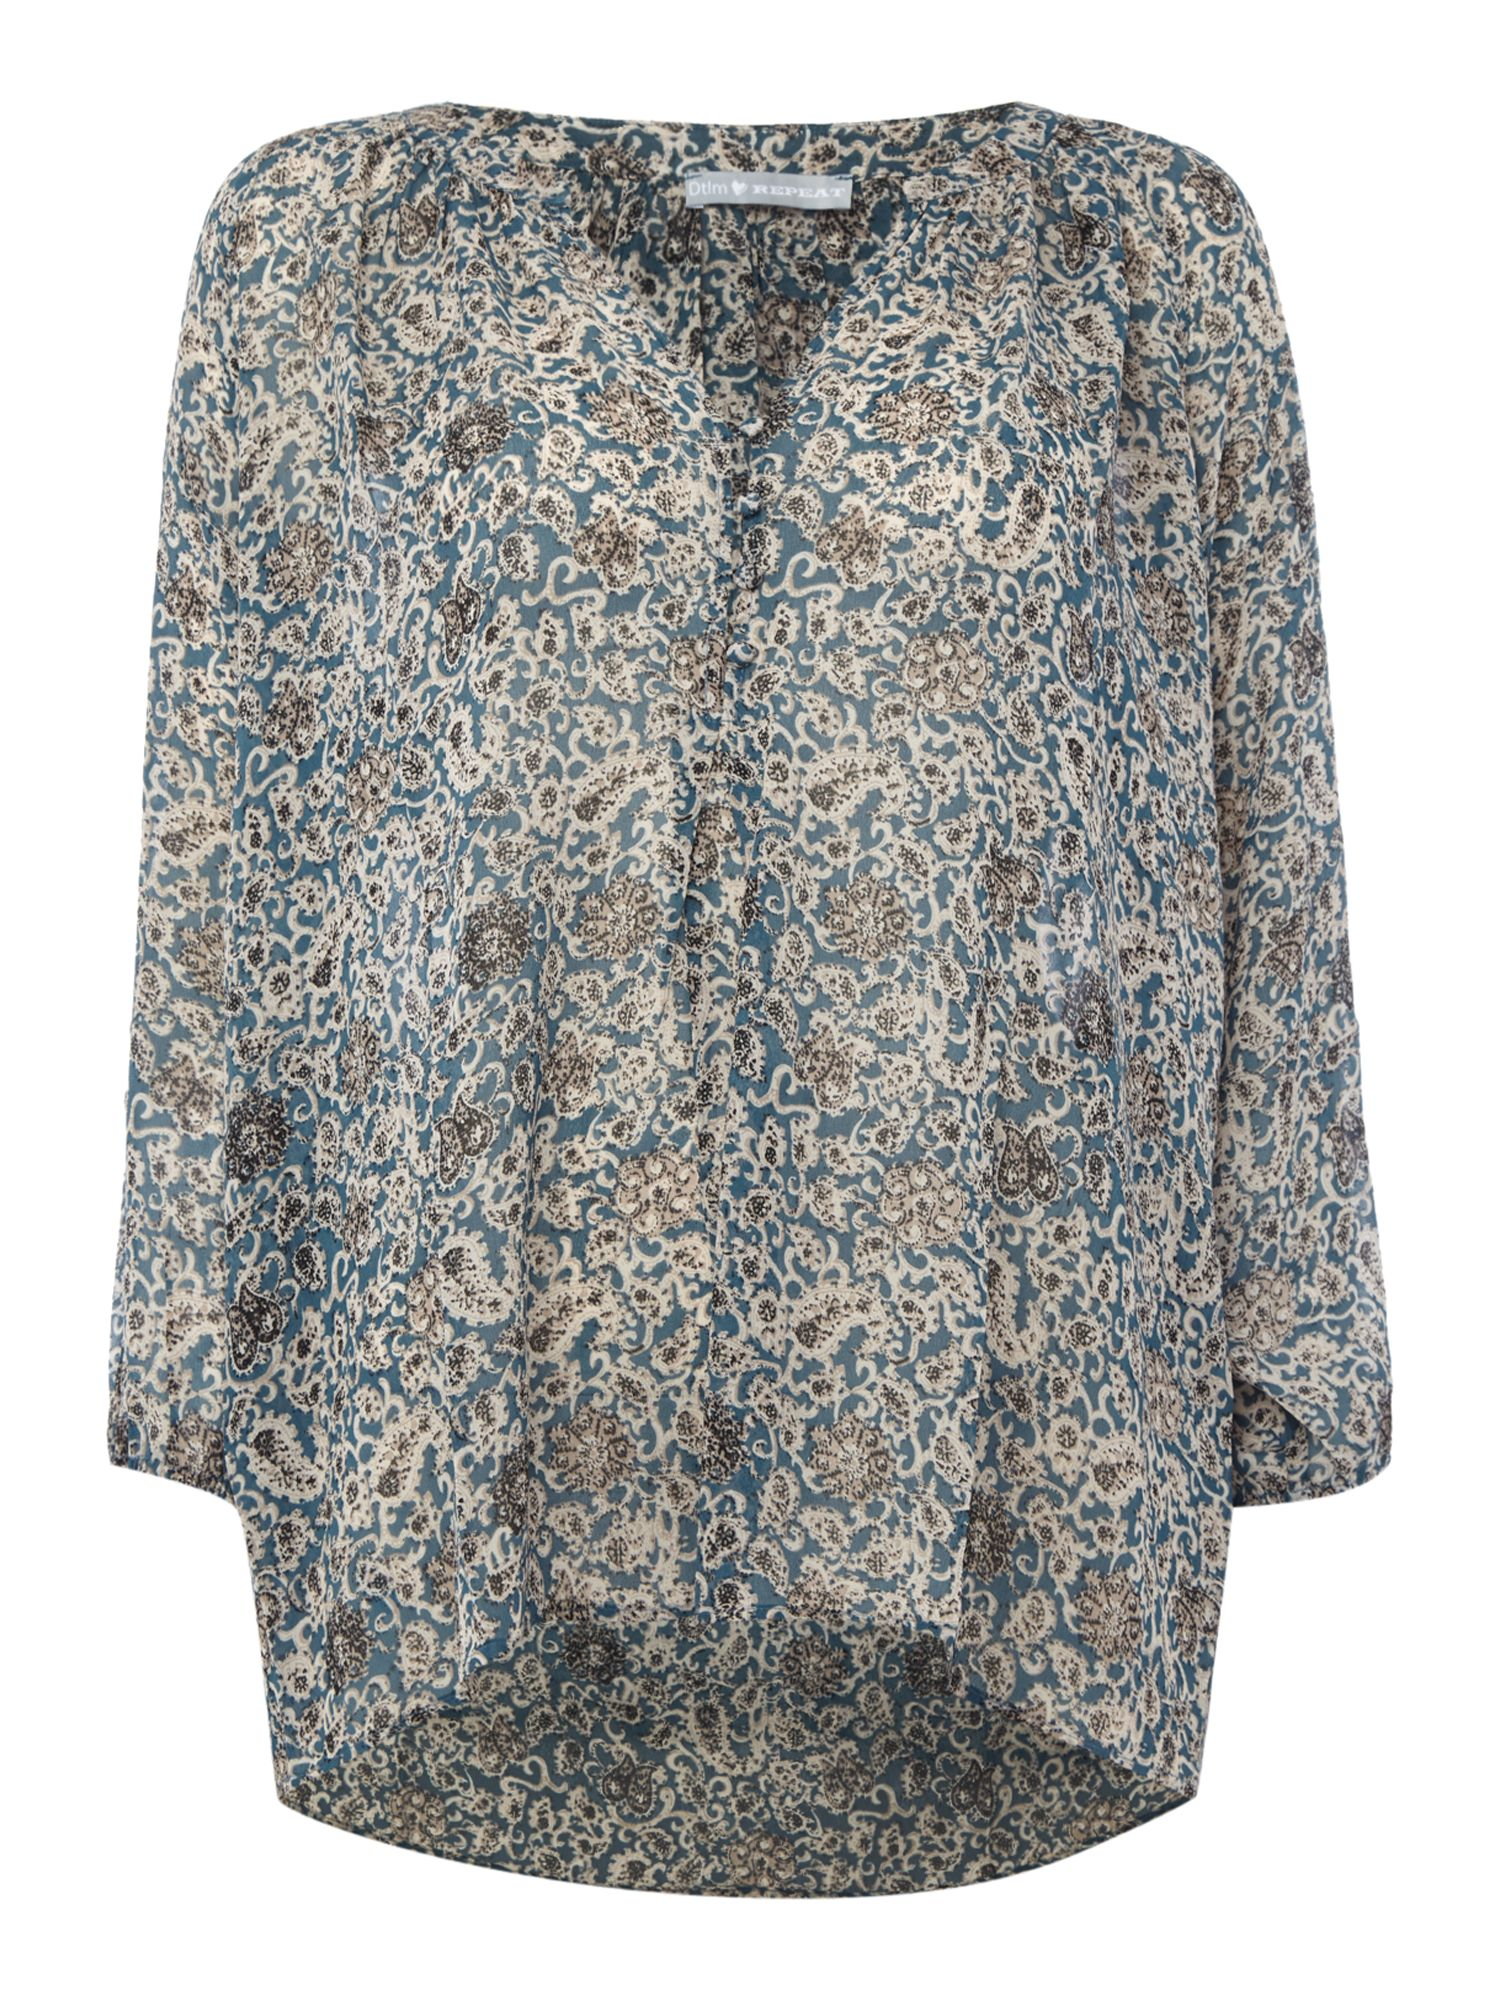 Repeat Cashmere Repeat Cashmere Printed button front blouse, Blue